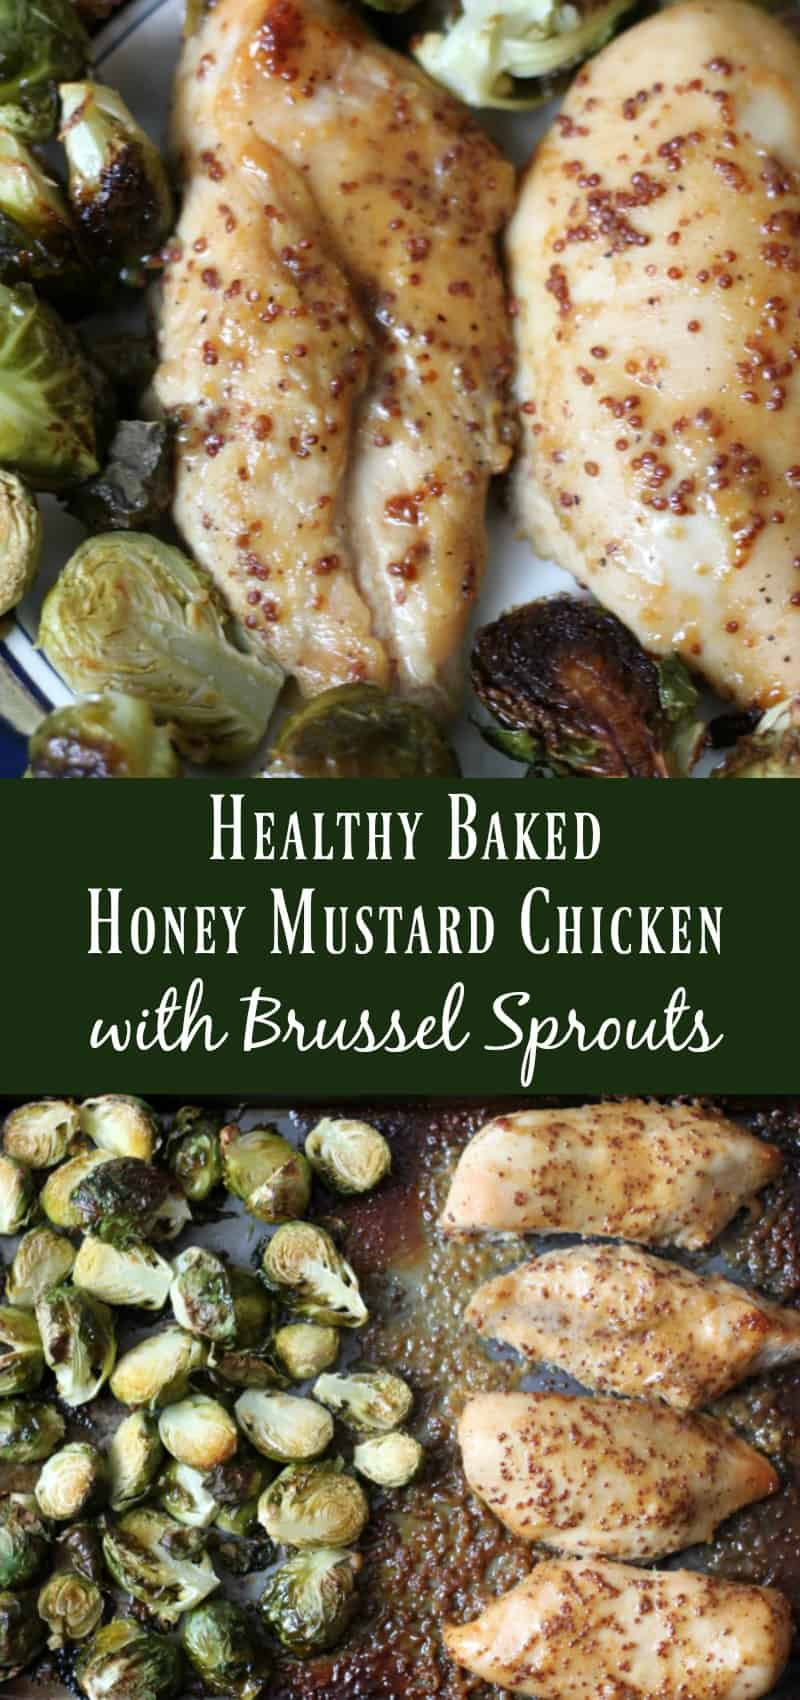 Excellent, support. Baked honey chicken breast